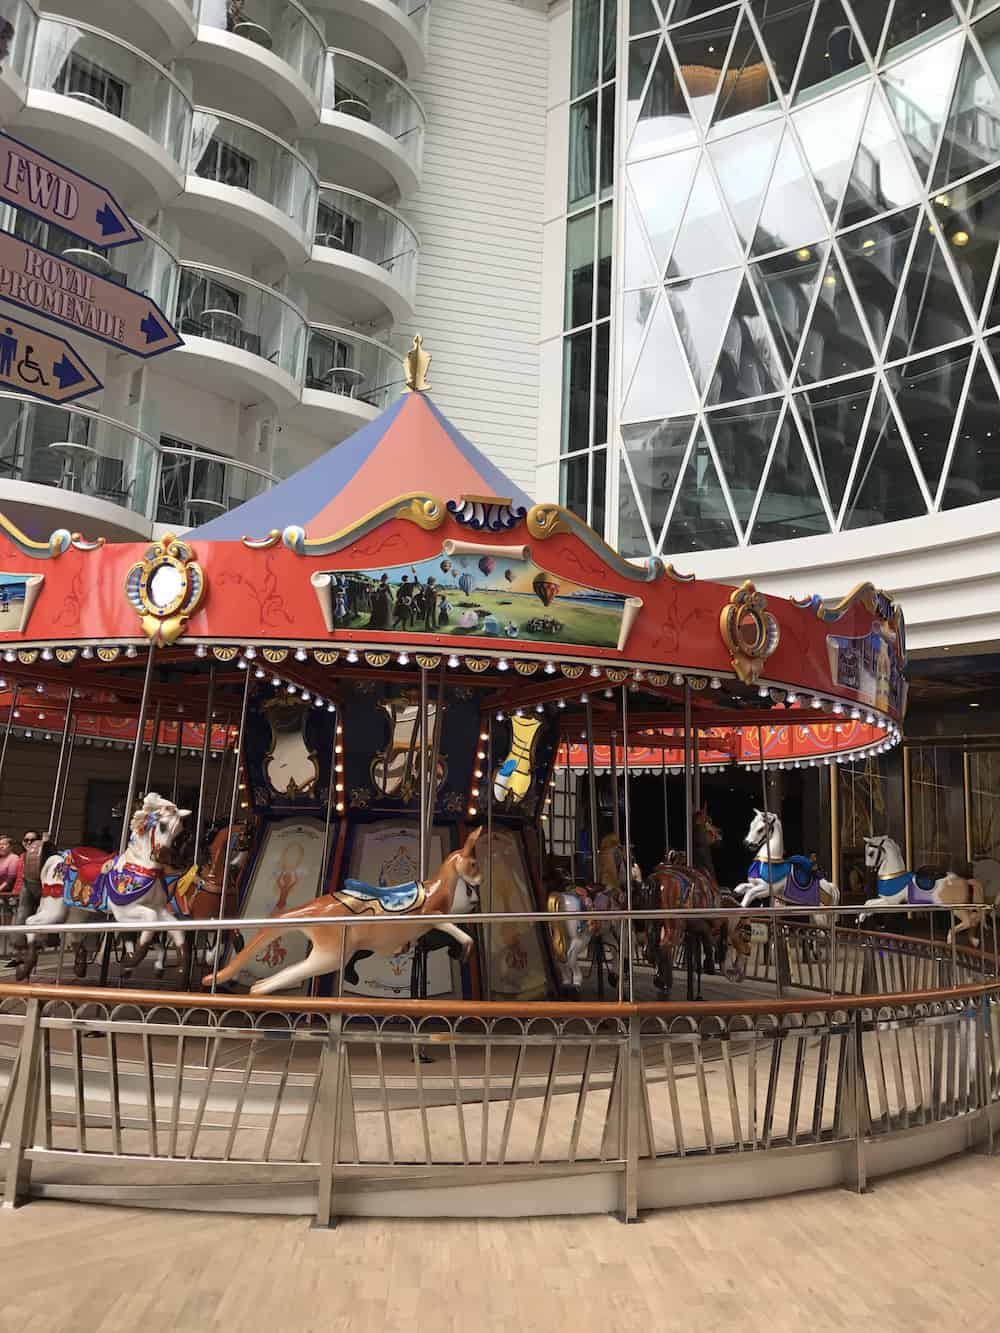 Carousel on Symphony Of The Seas